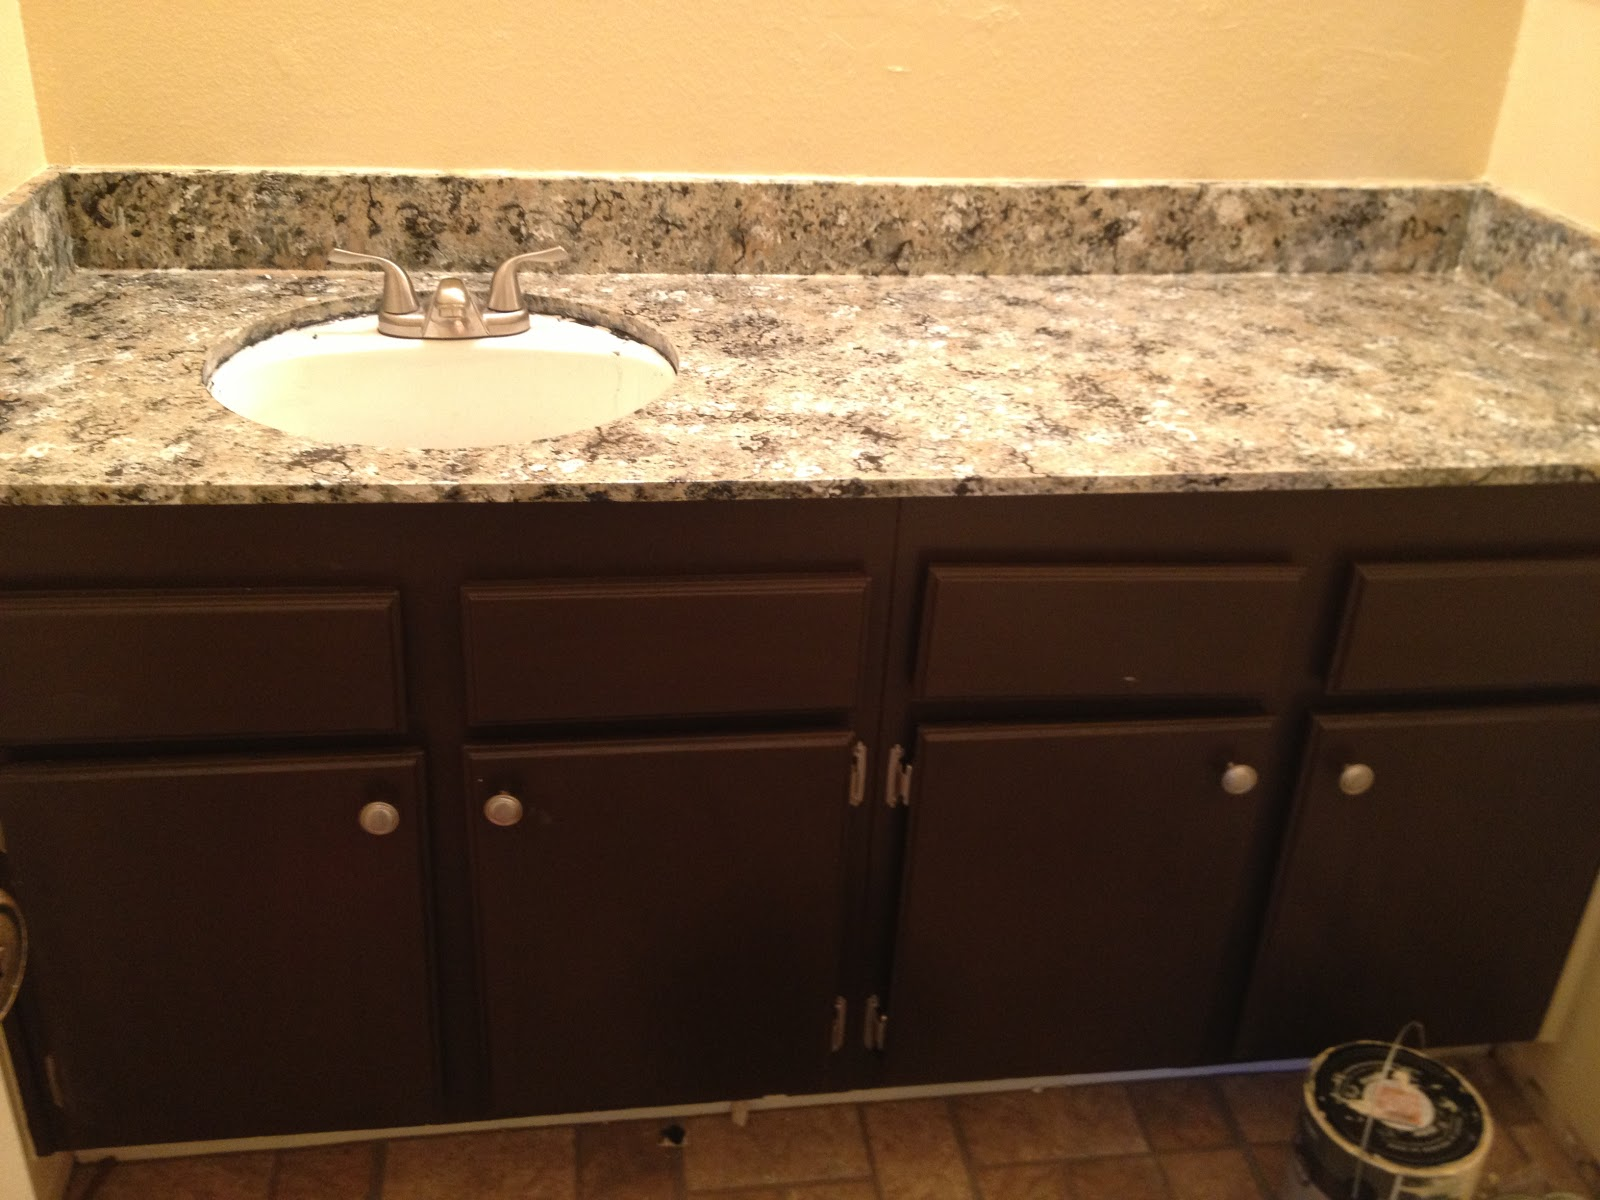 Giani Countertop Paint Vs Rustoleum : BEFORE - do not be fooled. This was tricky realtor photography and was ...